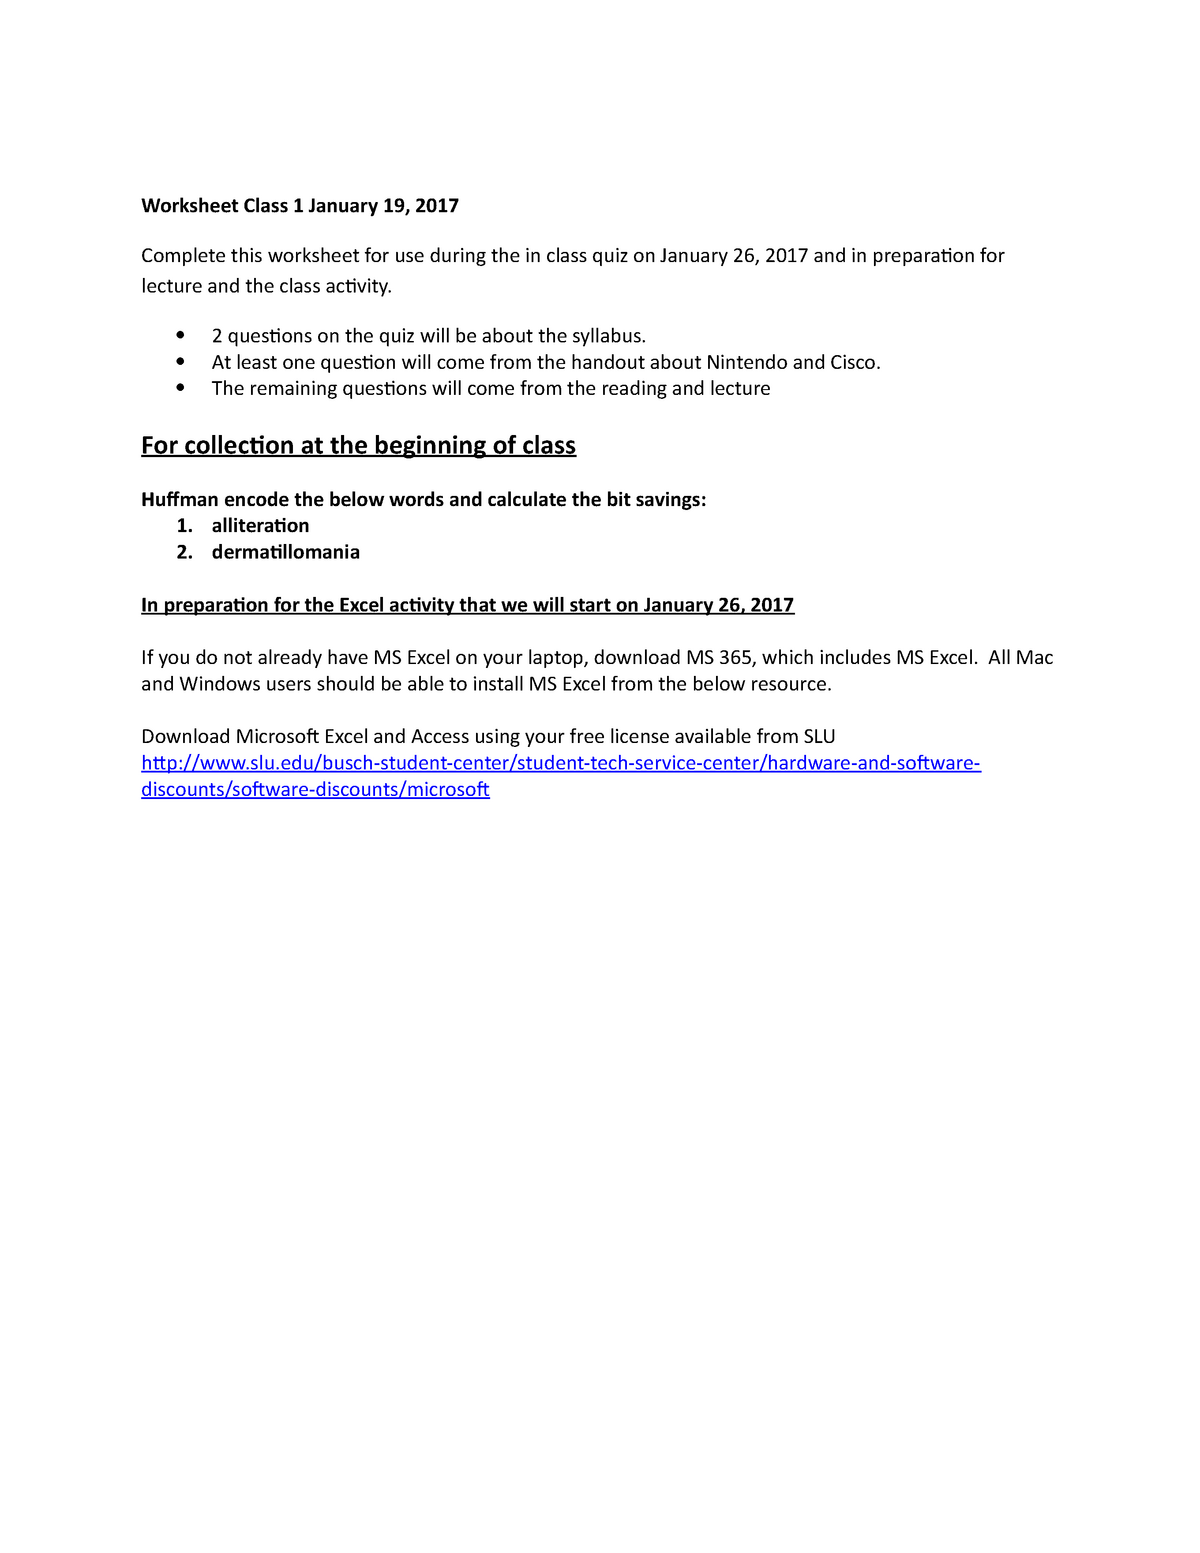 WS 2 - Lecture notes 1 - ITM 200: Intro To Information